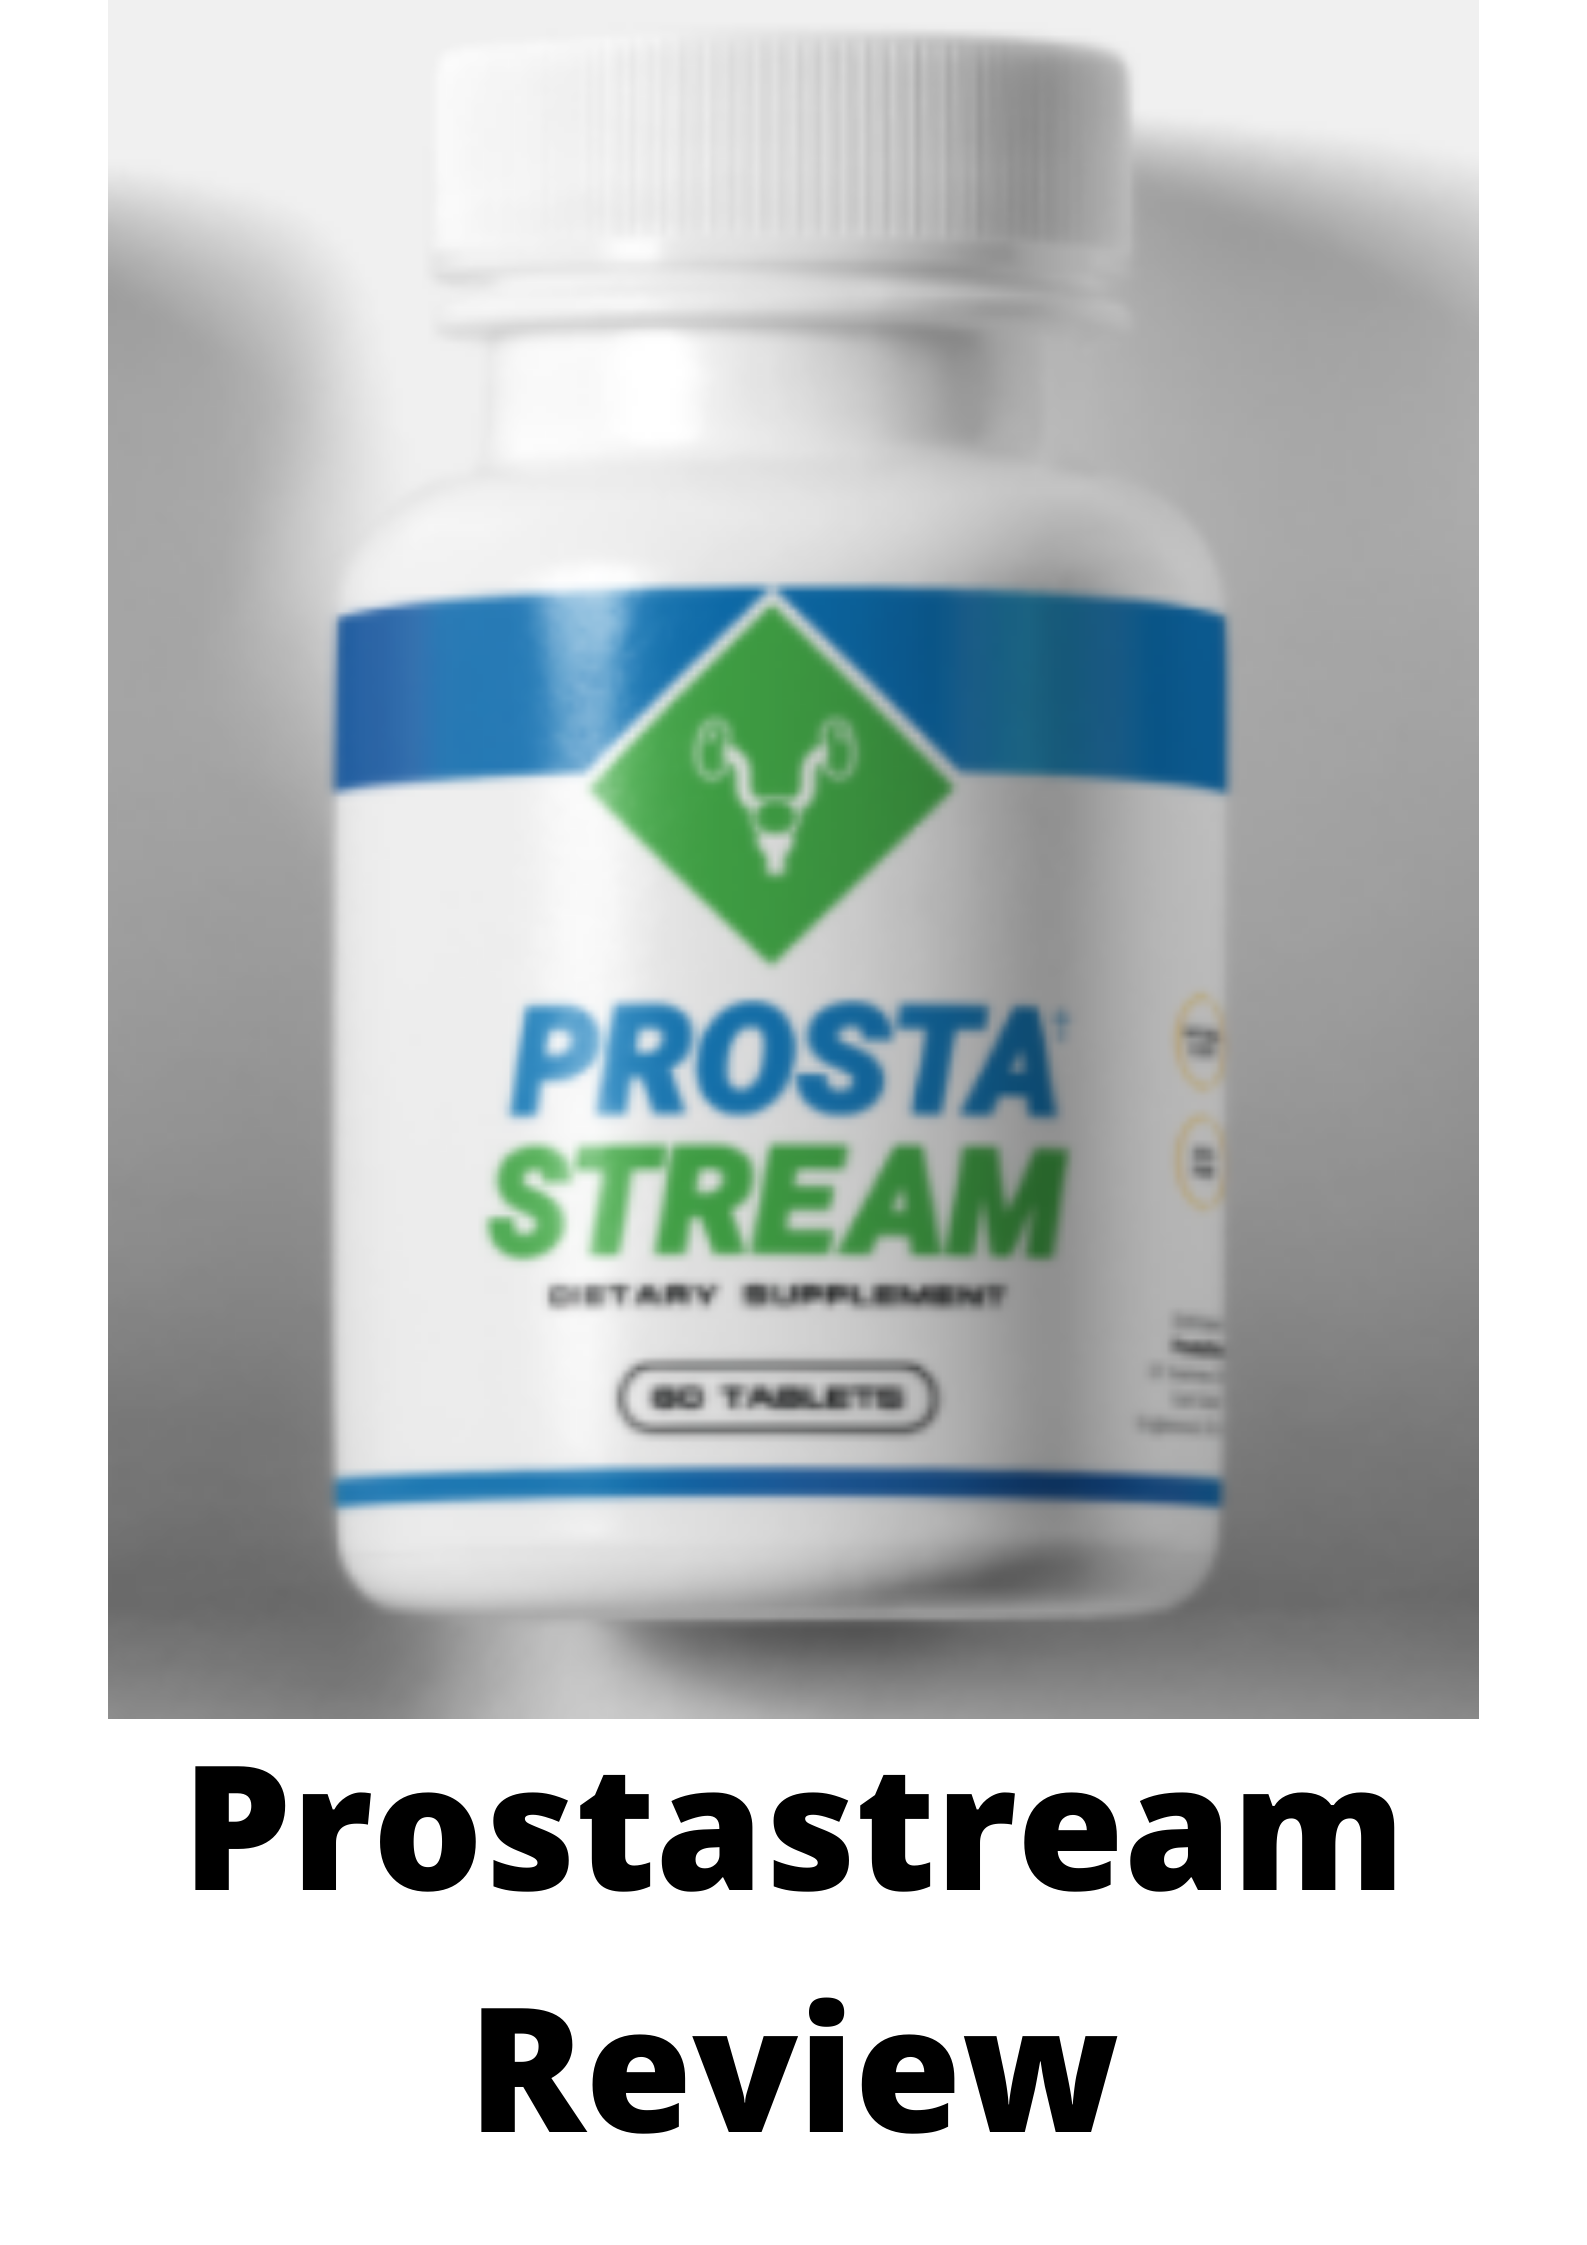 Prostastream Review: IS IT WORTH TRYING?